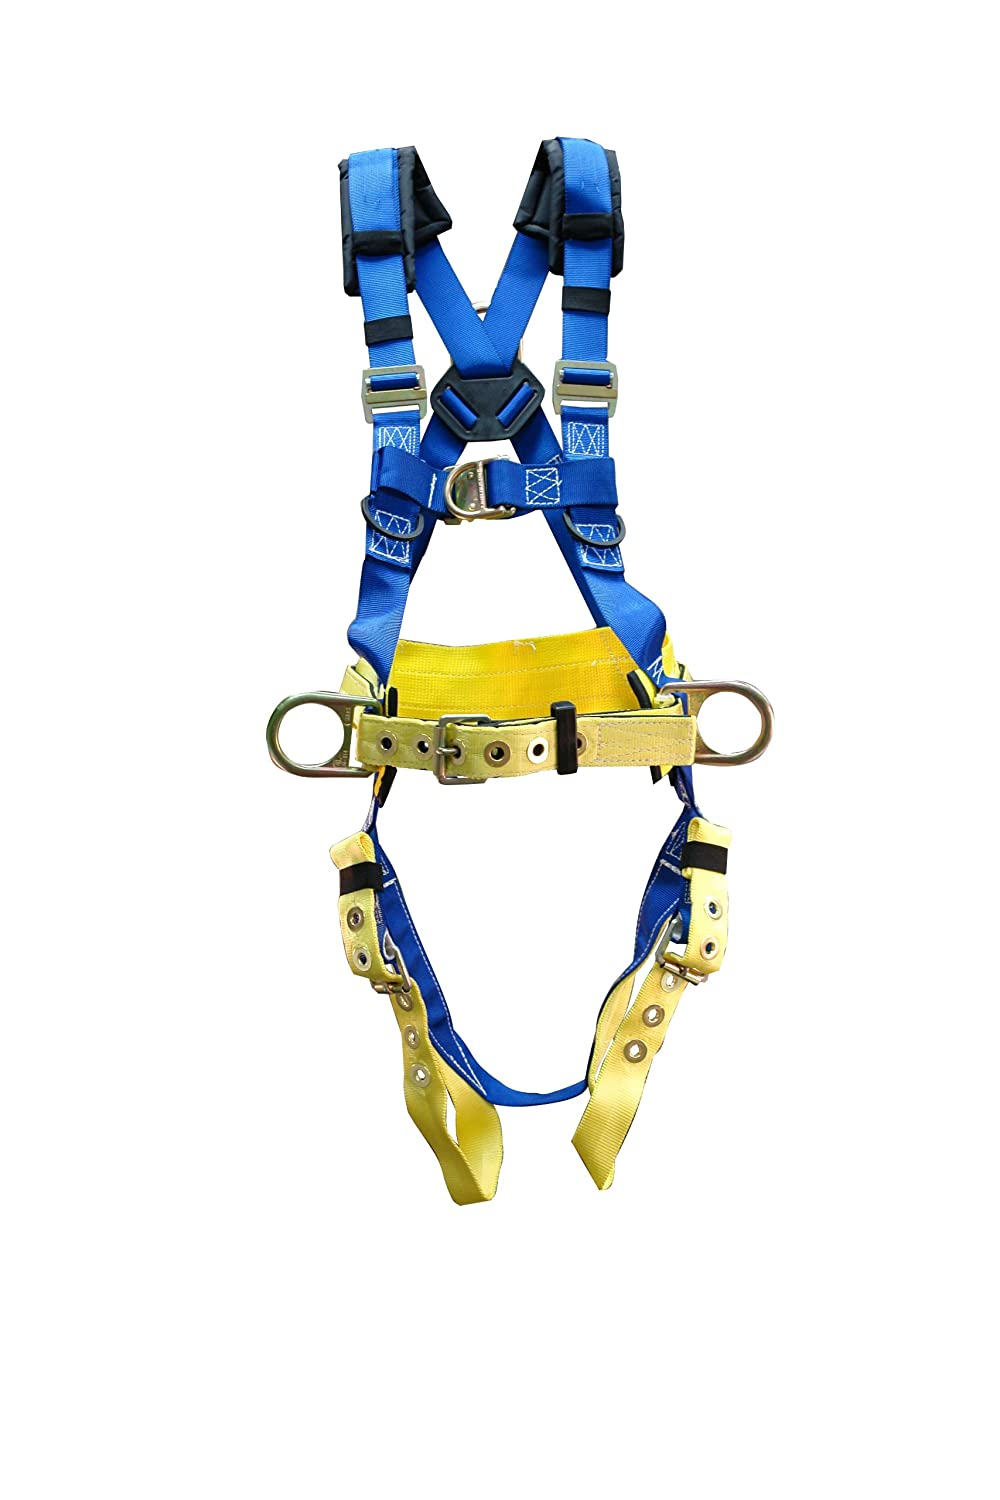 Elk River 66611 EagleTower Polyester/Nylon LE 6 D-Ring Harnesses with Quick-Connect Buckles, Small by Elk River B005FMPSMI